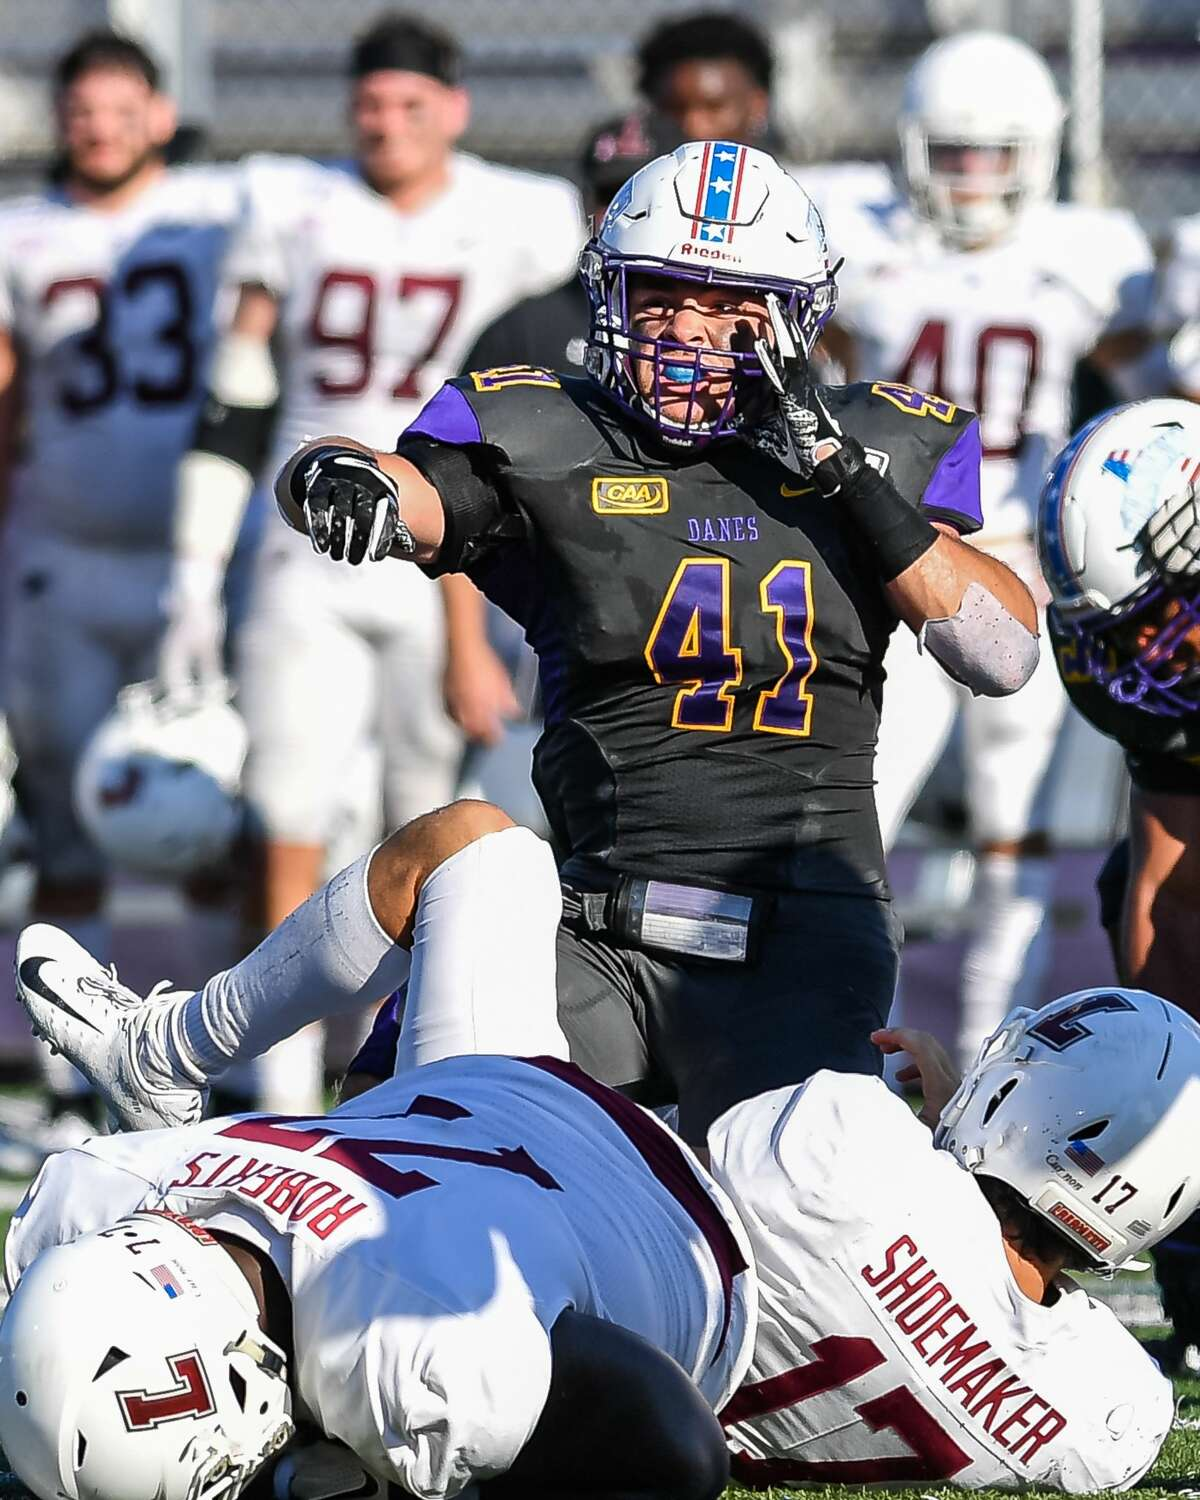 UAlbany's A.J. Mistler had nine tackles and a forced fumble in his debut at linebacker against Lafayette on Saturday. (Bill Ziskin/UAlbany athletics)